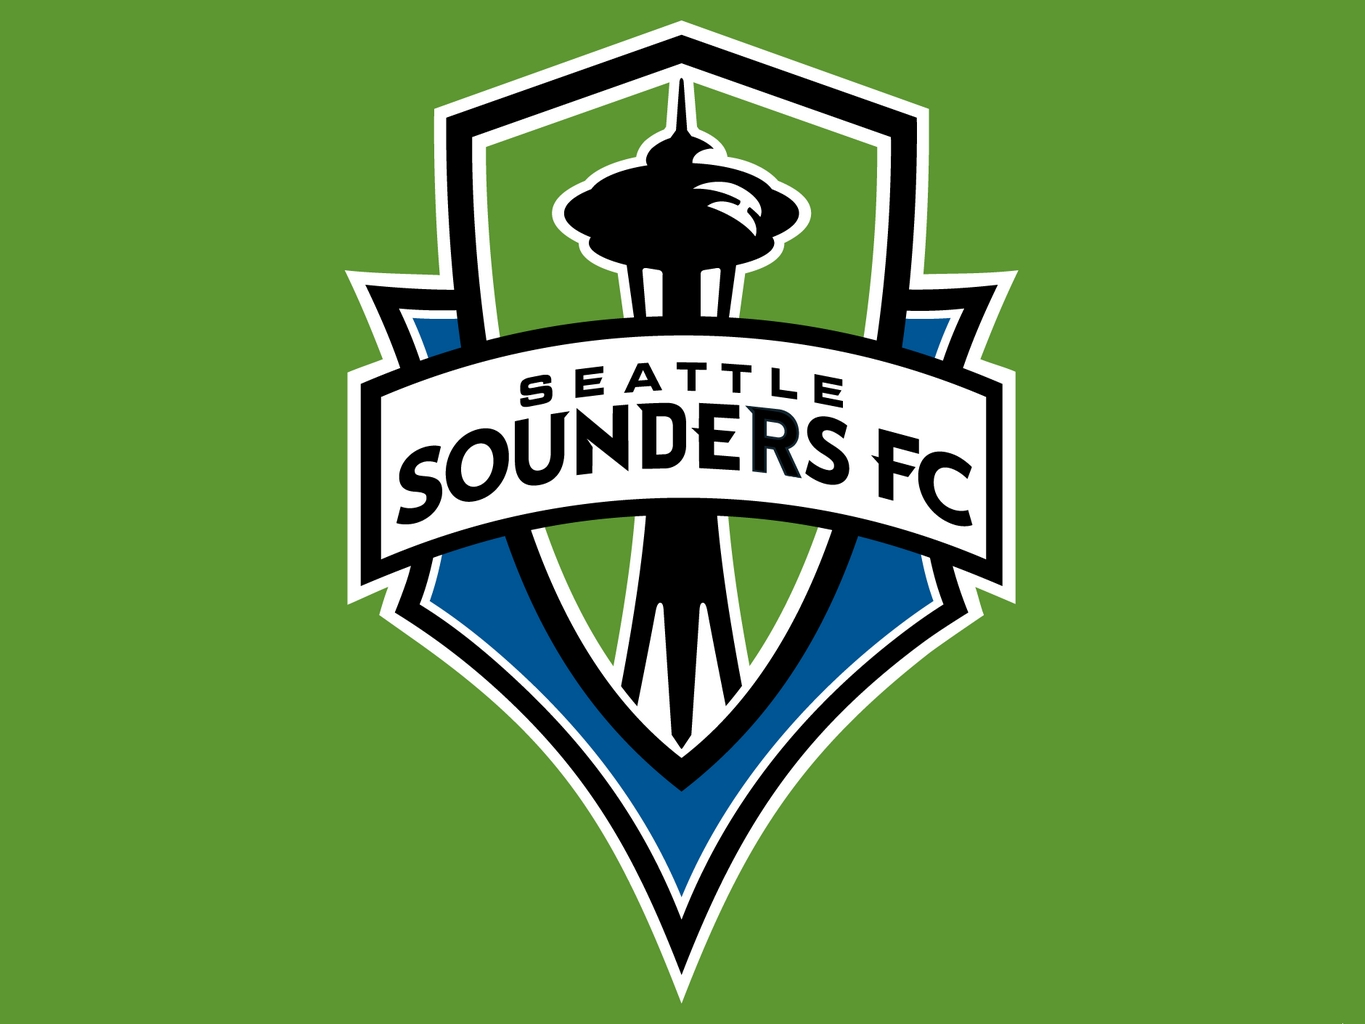 Seattle sounders logo clipart black and white Seattle Sounders Fc Vector PNG Transparent Seattle Sounders ... black and white